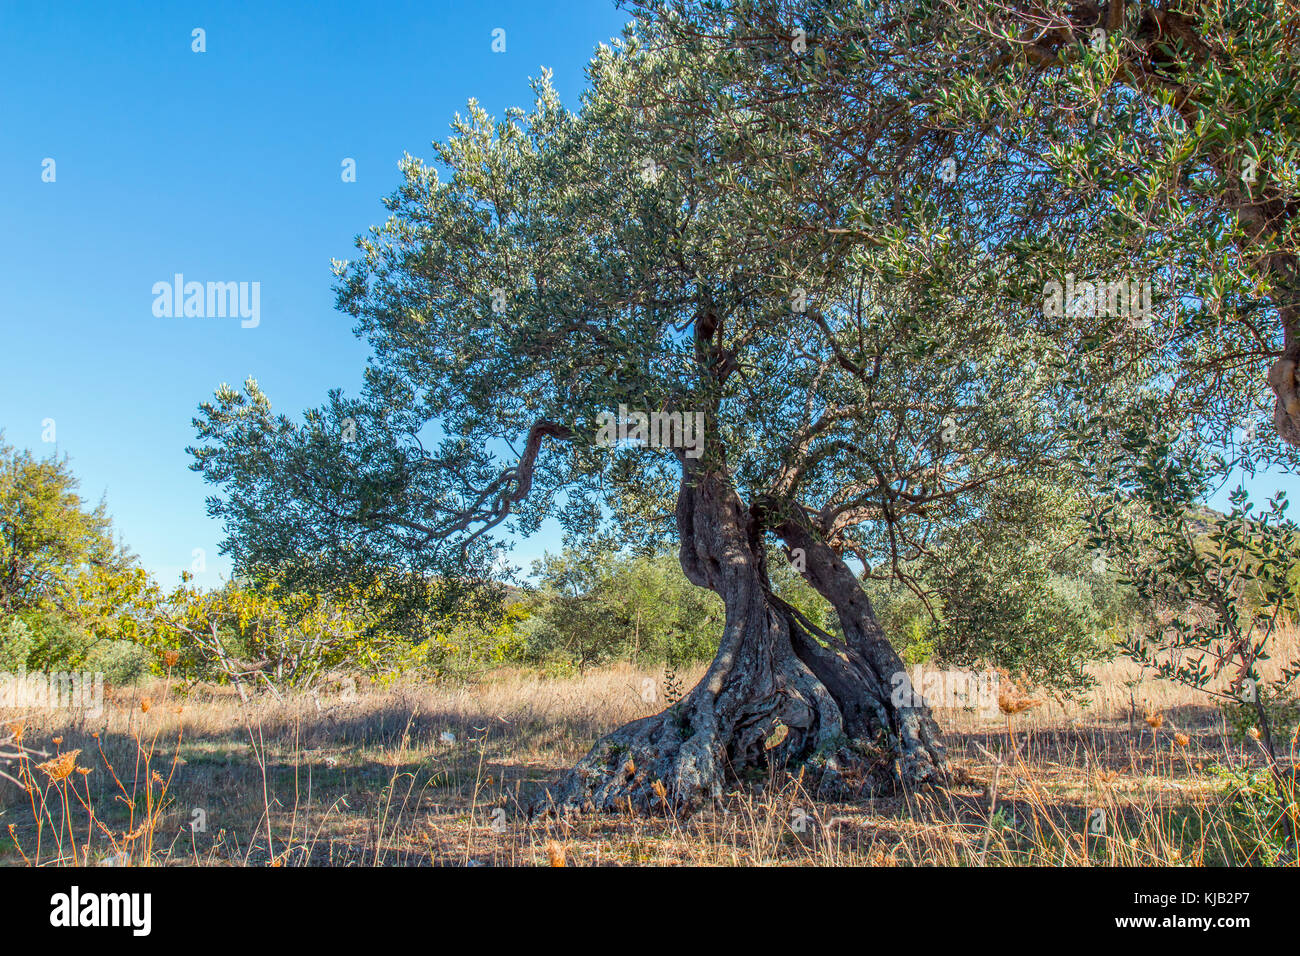 Very old olive tree with strong roots - Stock Image